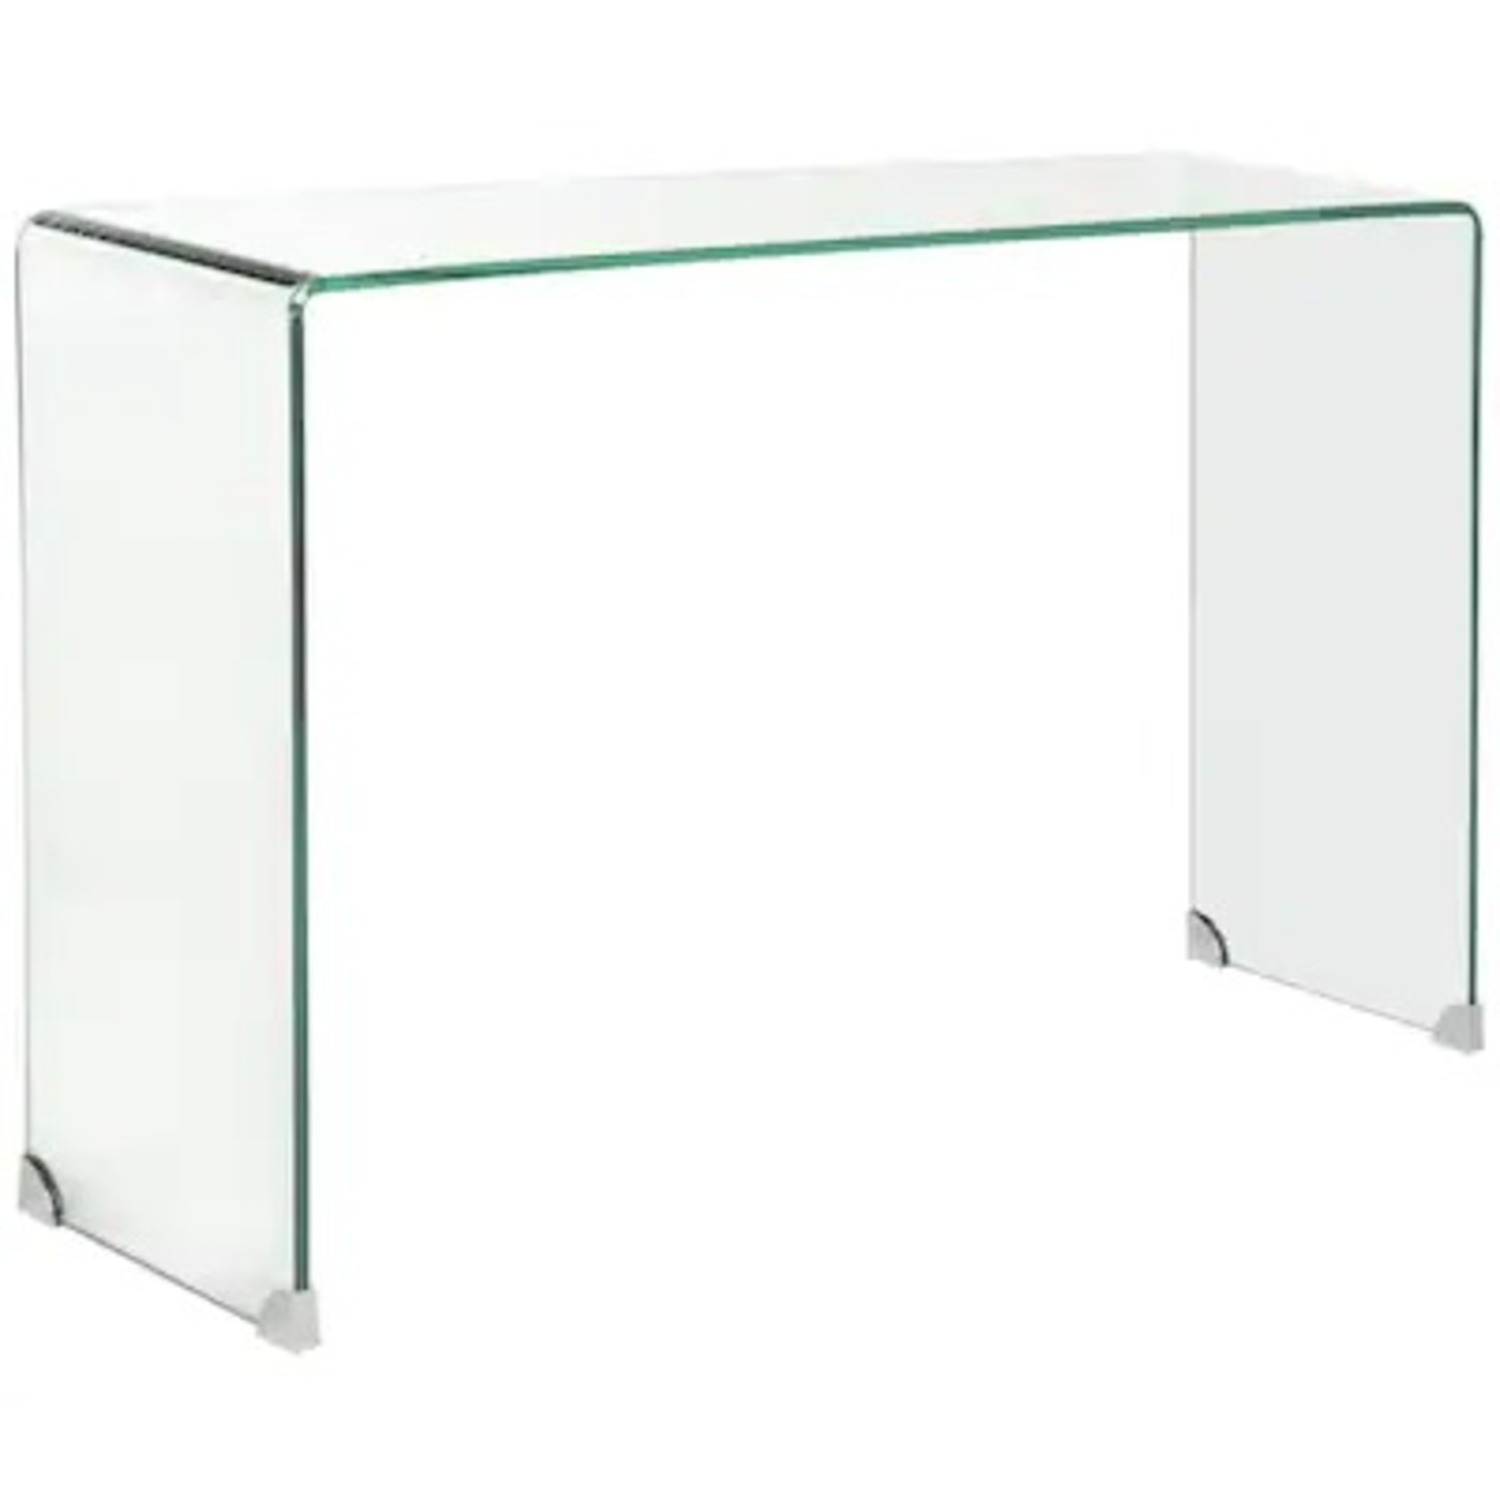 Safavieh Glass Waterfall Console Table Desk - image-3